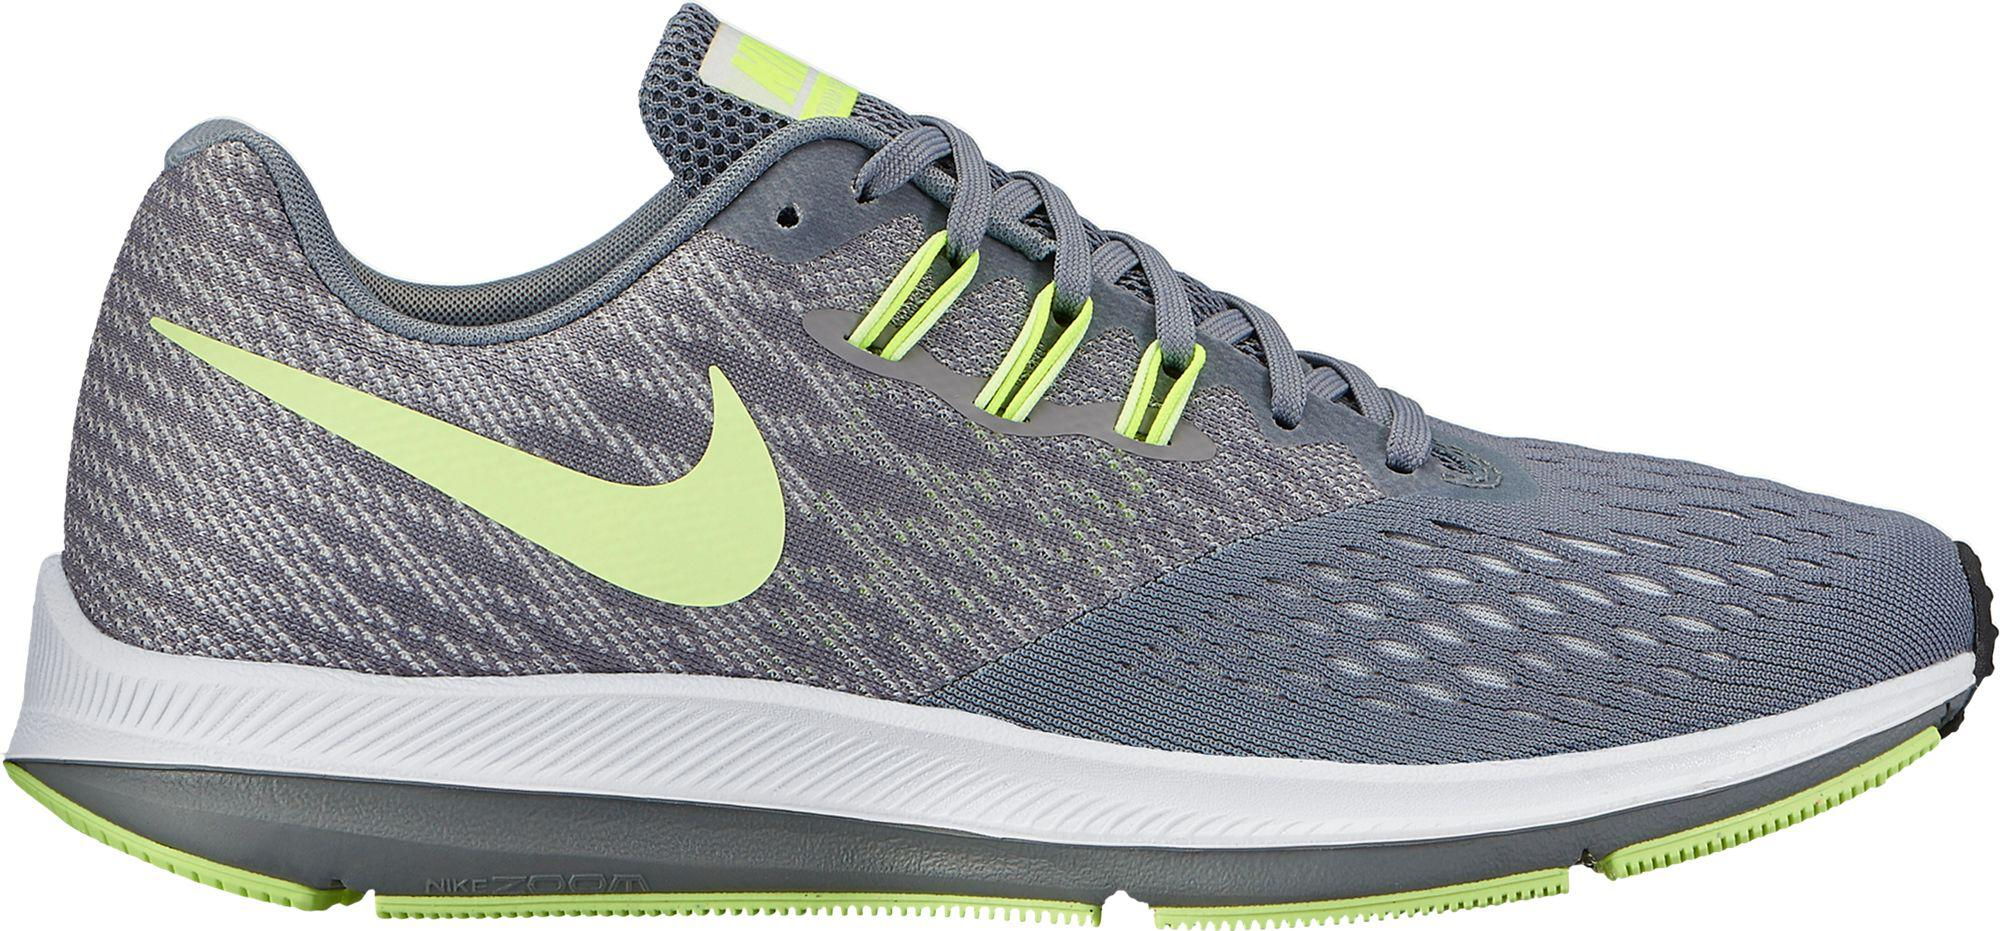 929ab5467bd Lyst - Nike Air Zoom Winflo 4 Running Shoes in Gray for Men